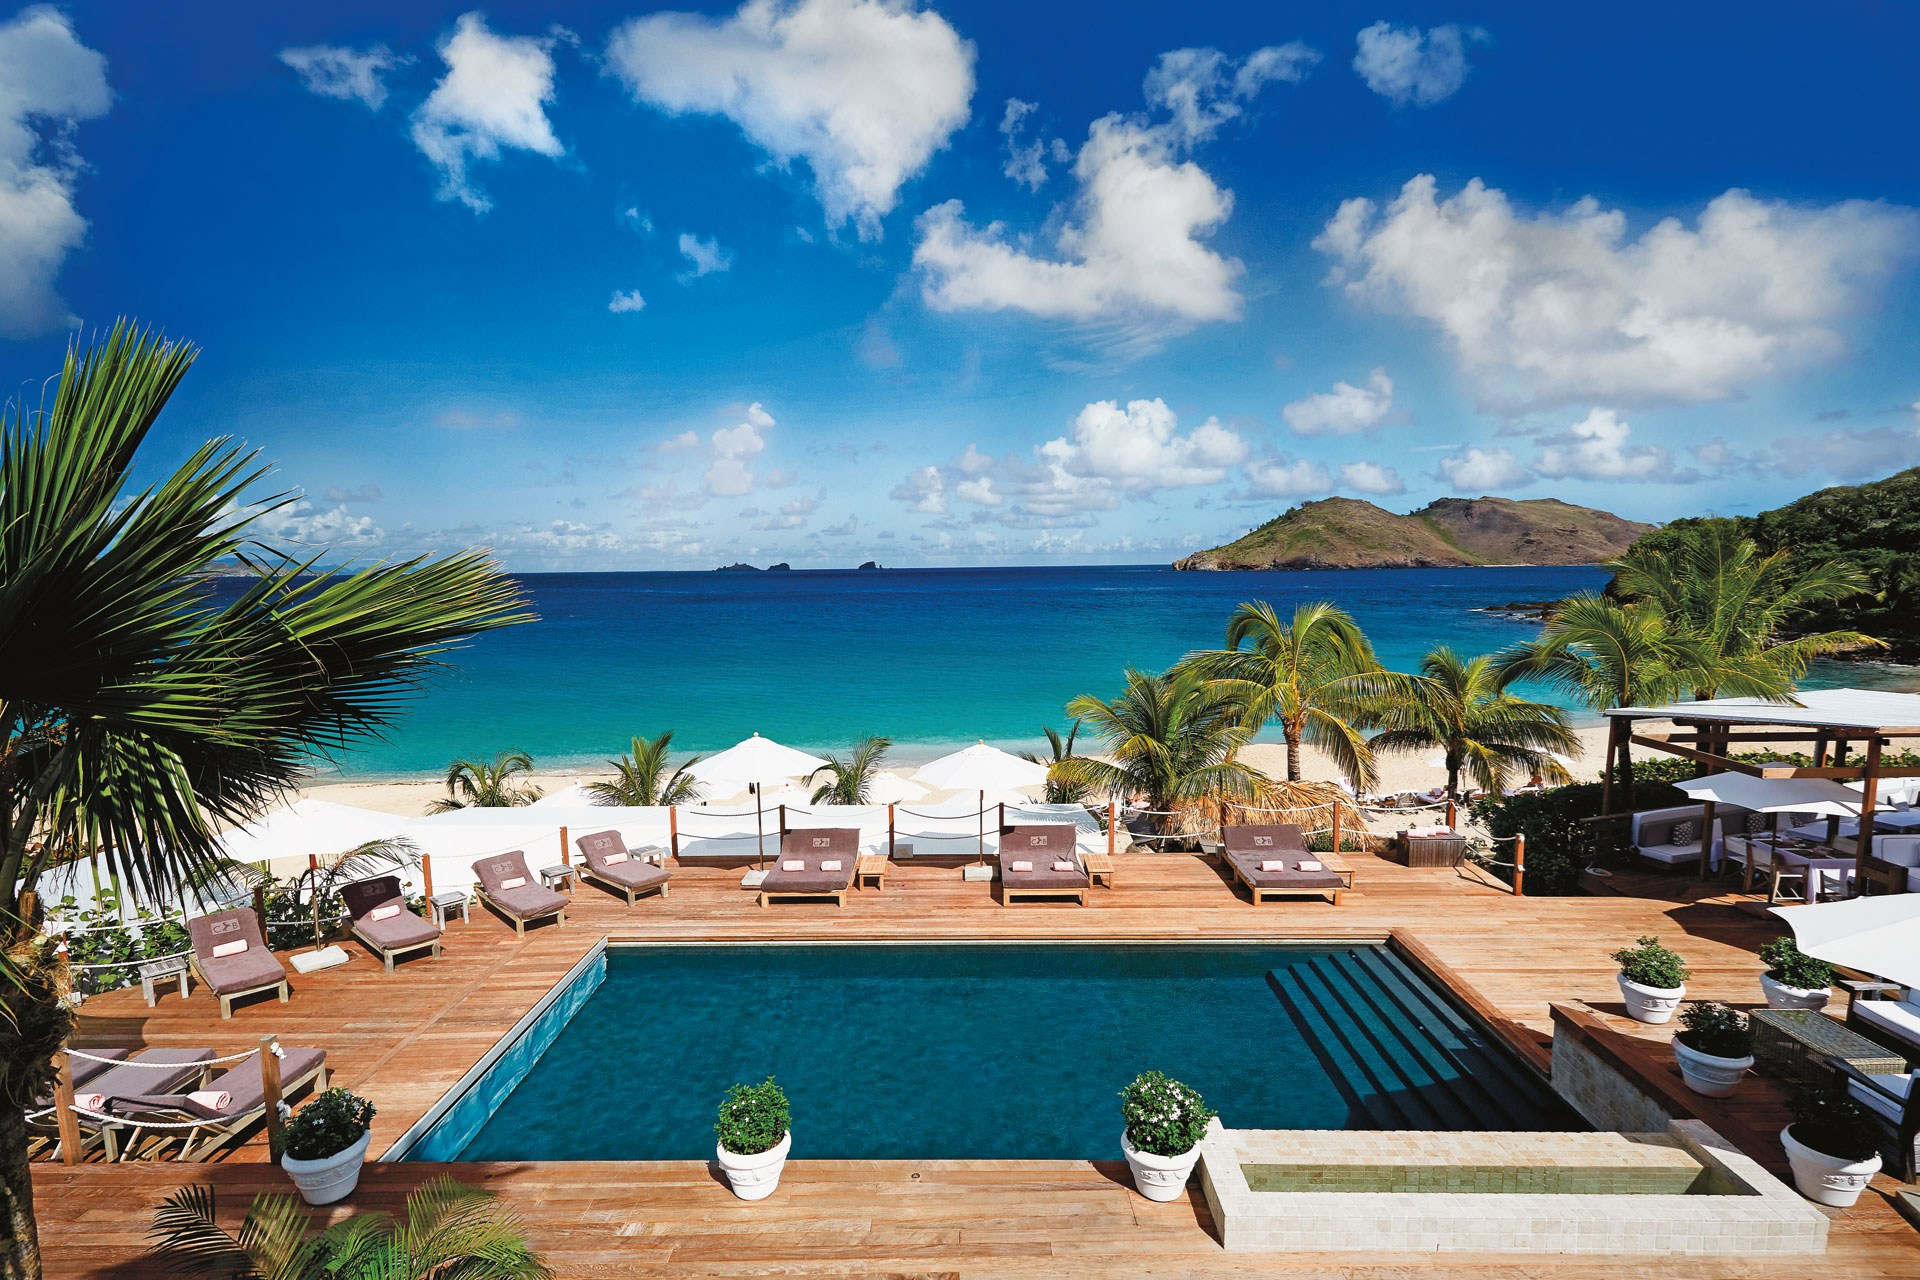 poolside-at-cheval-blanc-st-barth-isle-de-france-conde-nast-traveller-9jan15-Pierre-carreau